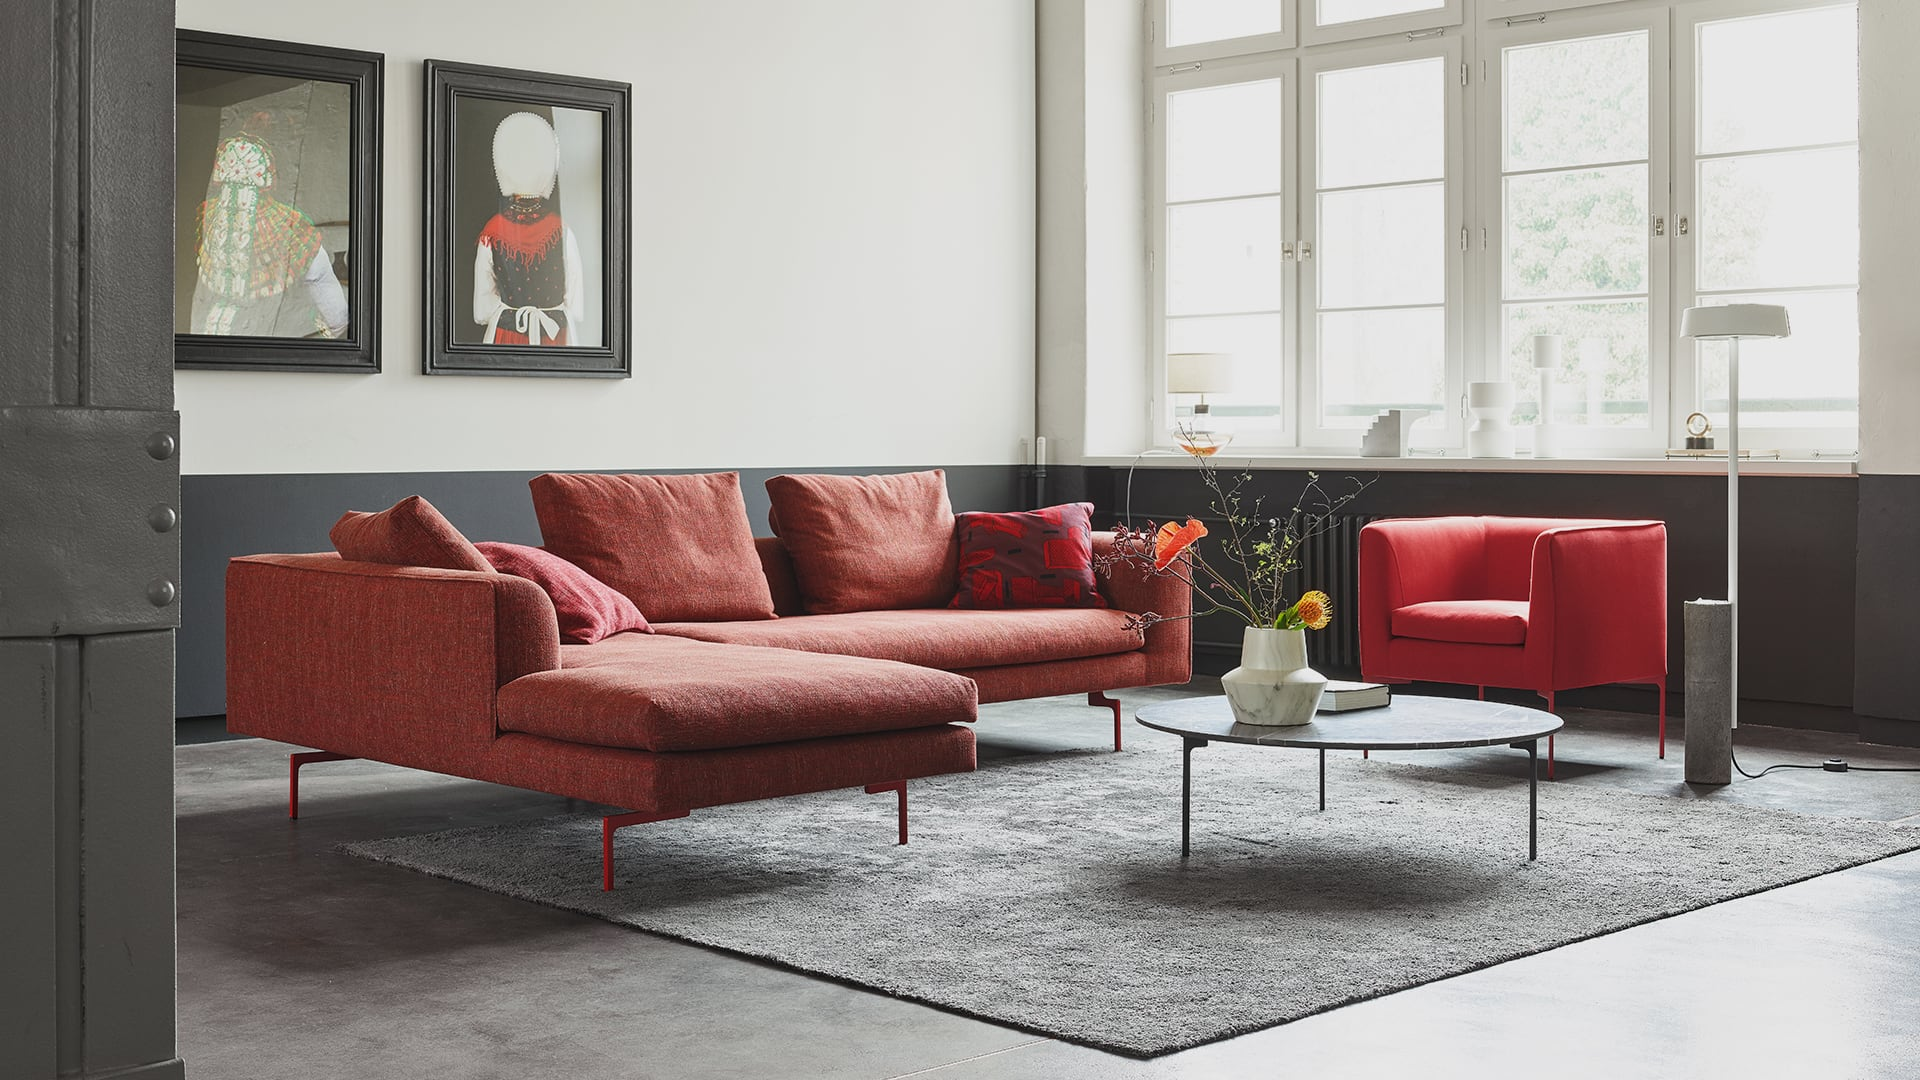 Couches Und Sofas Mell Lounge Sofa Cor